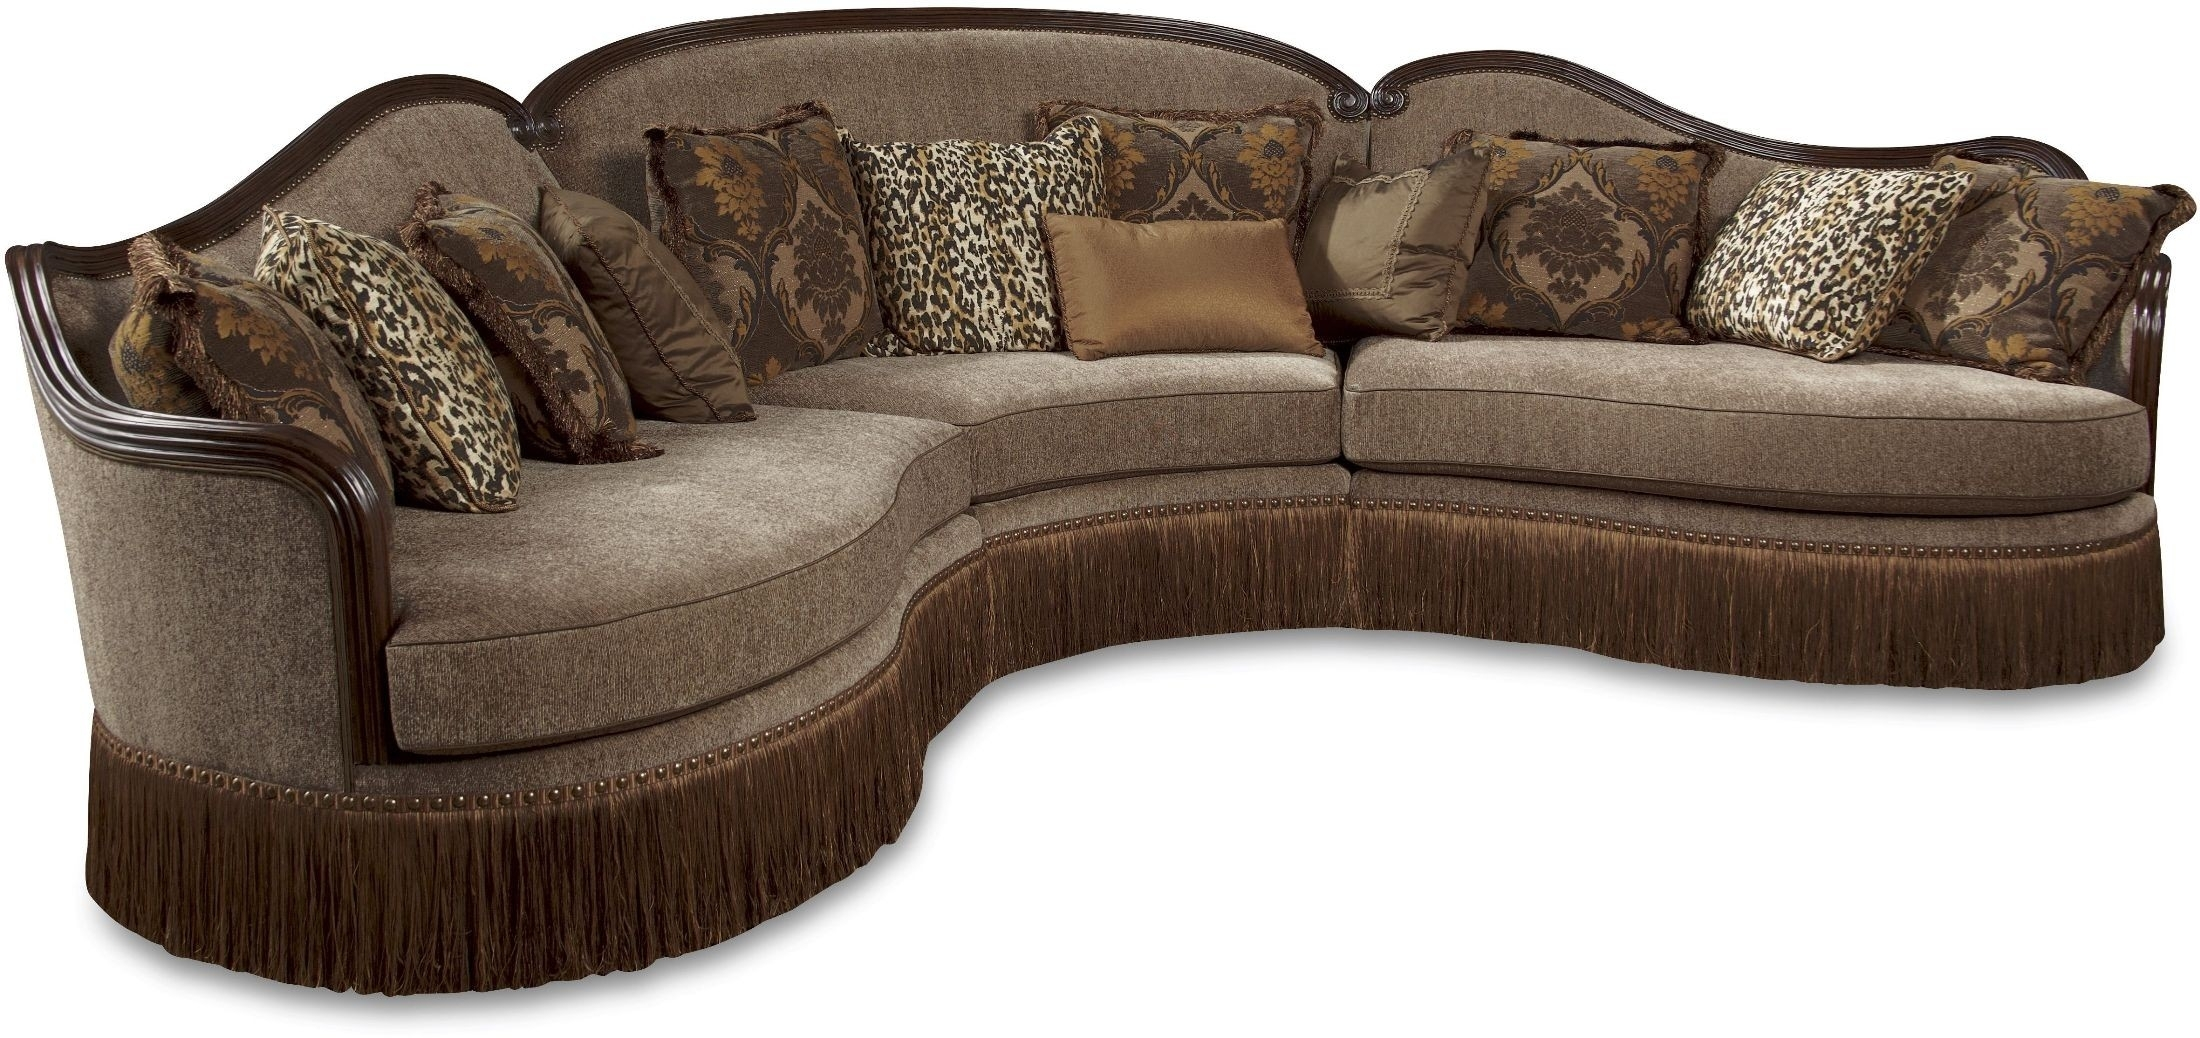 Giovanna Sable 3 Piece Sectional From Art | Coleman Furniture Inside Harper Down 3 Piece Sectionals (View 13 of 25)